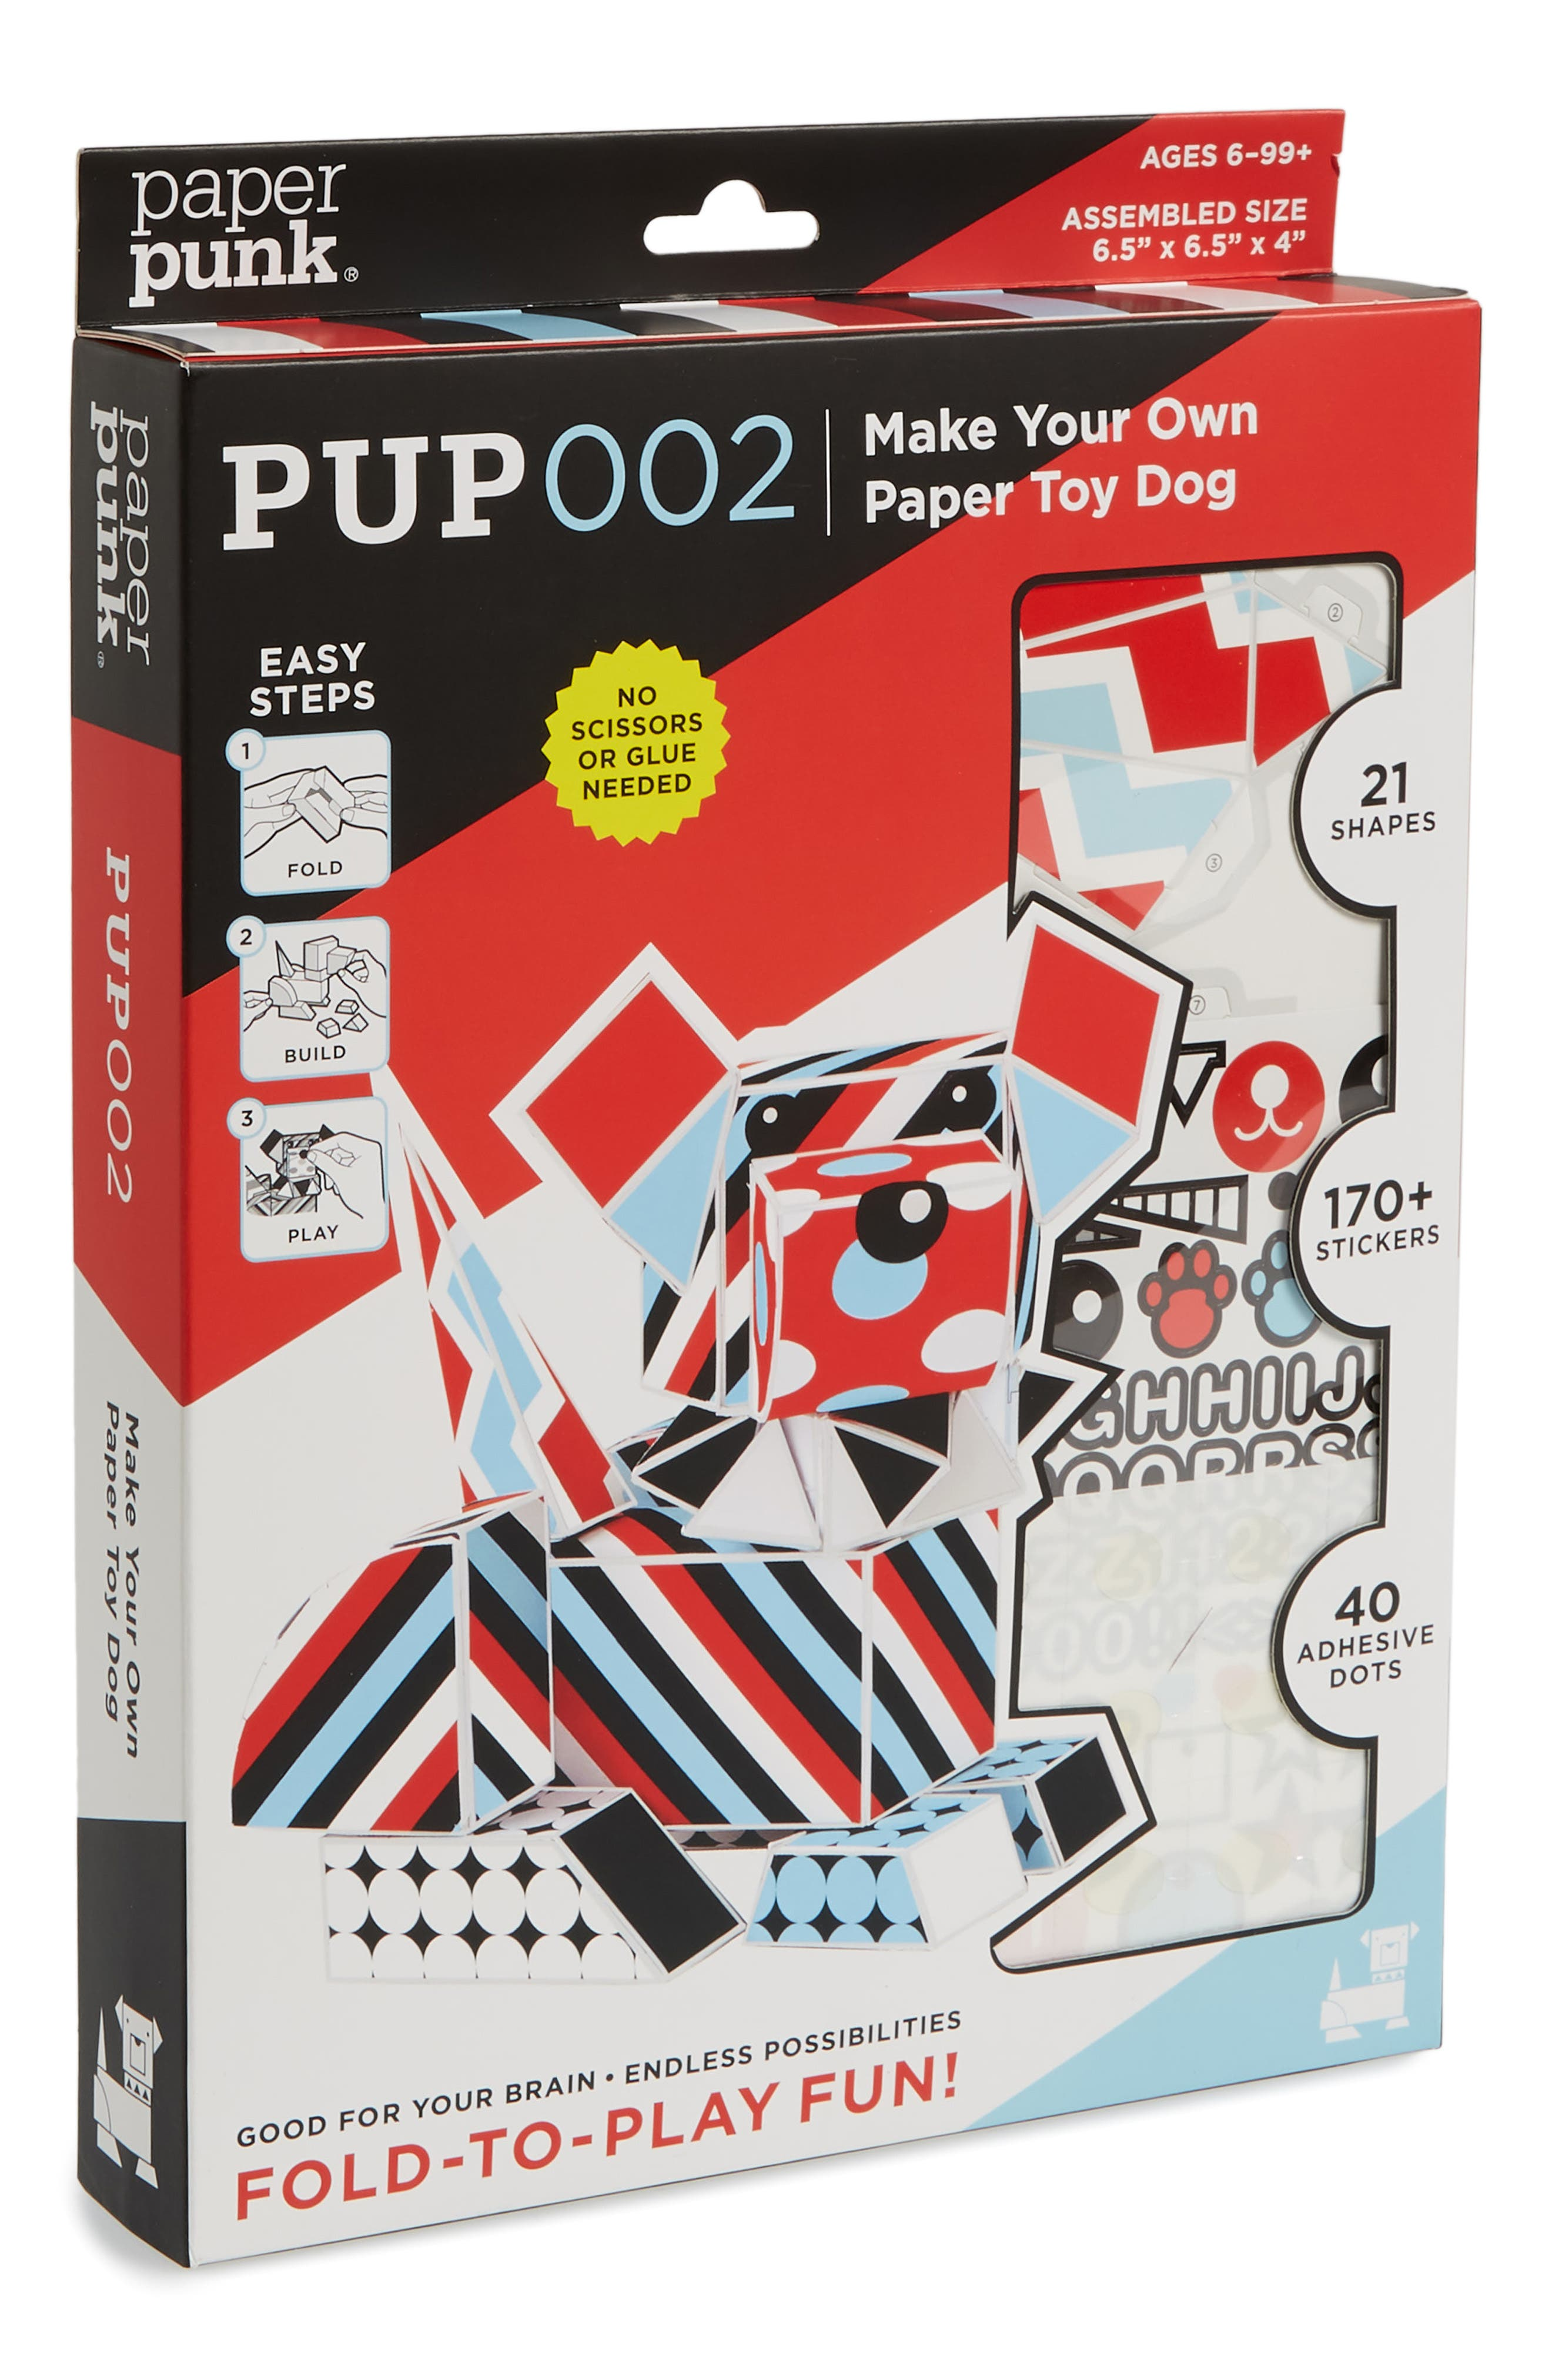 Pup002 Make Your Own Paper Toy Dog Kit,                             Main thumbnail 1, color,                             Multi